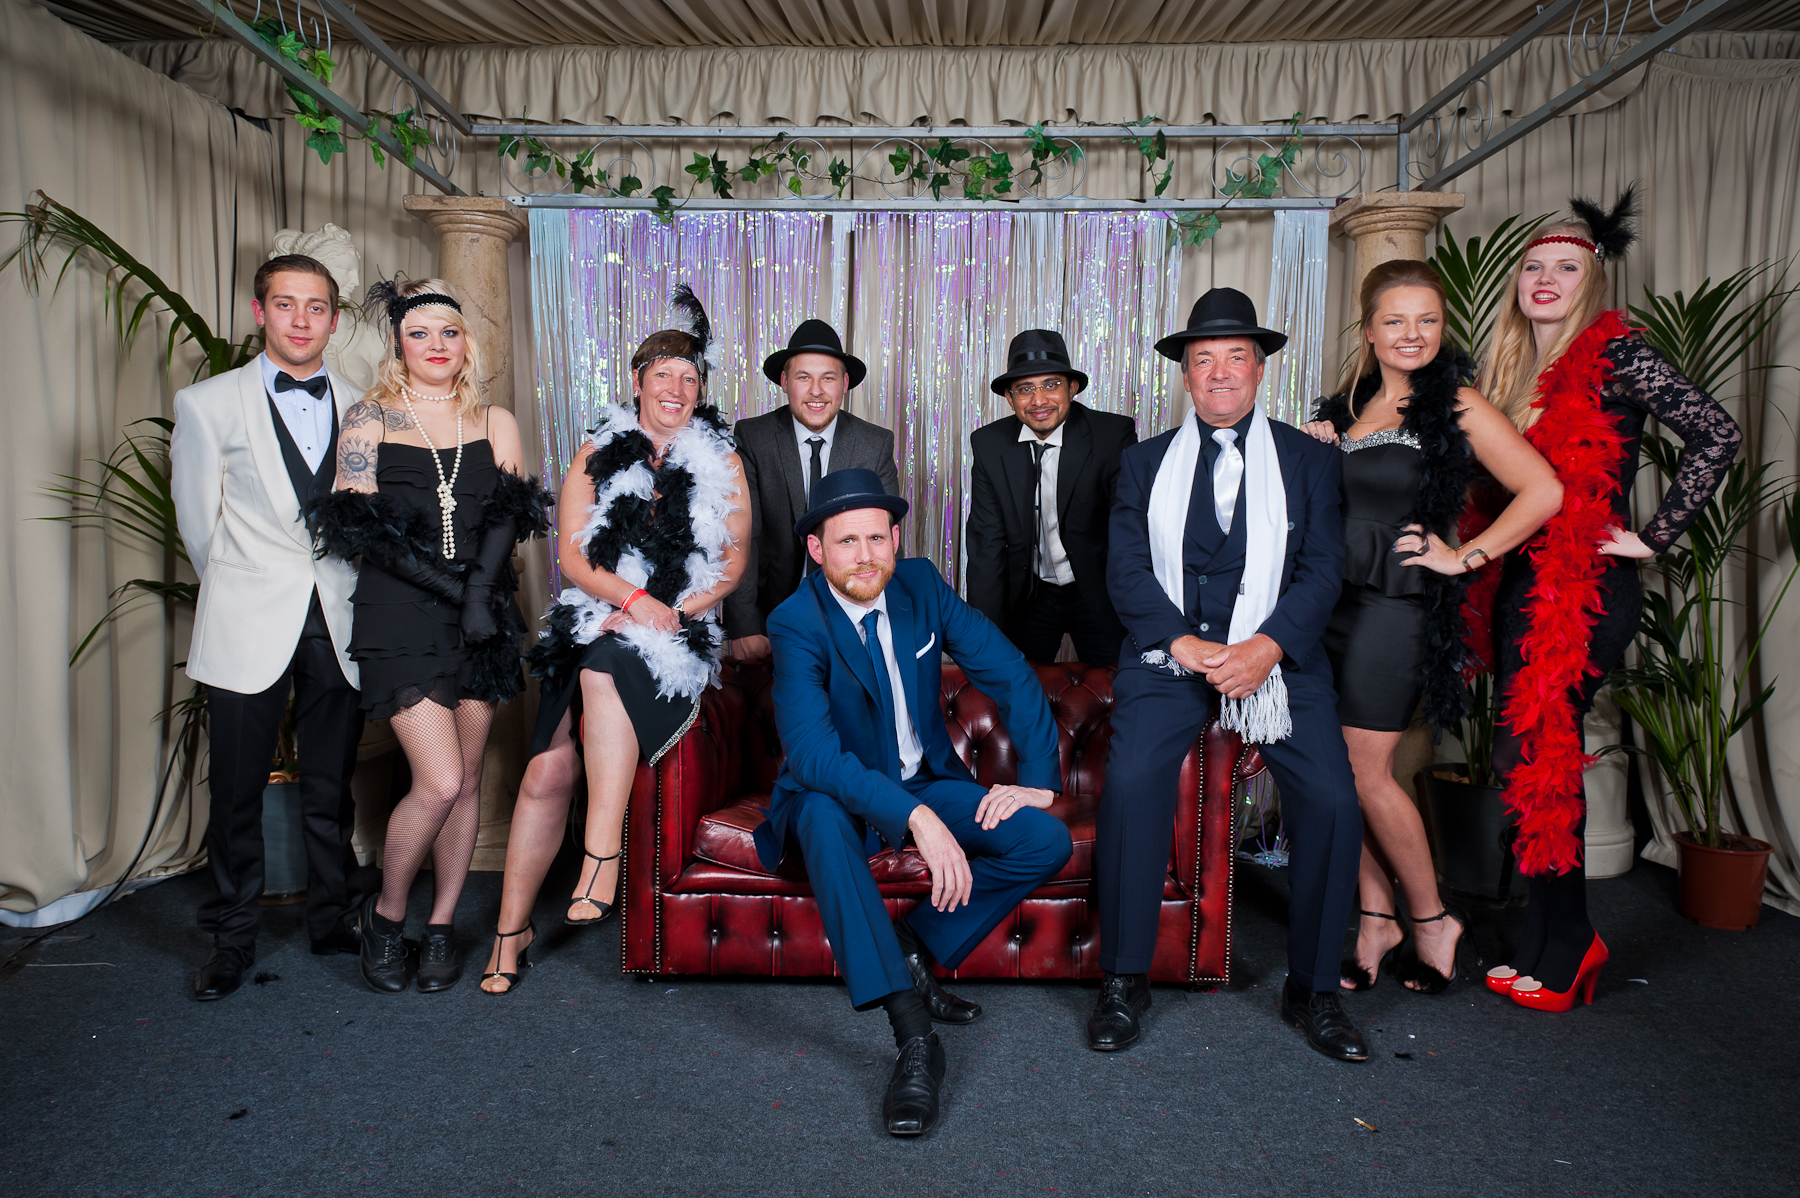 Gatsby-meet-the-team-2014.jpg